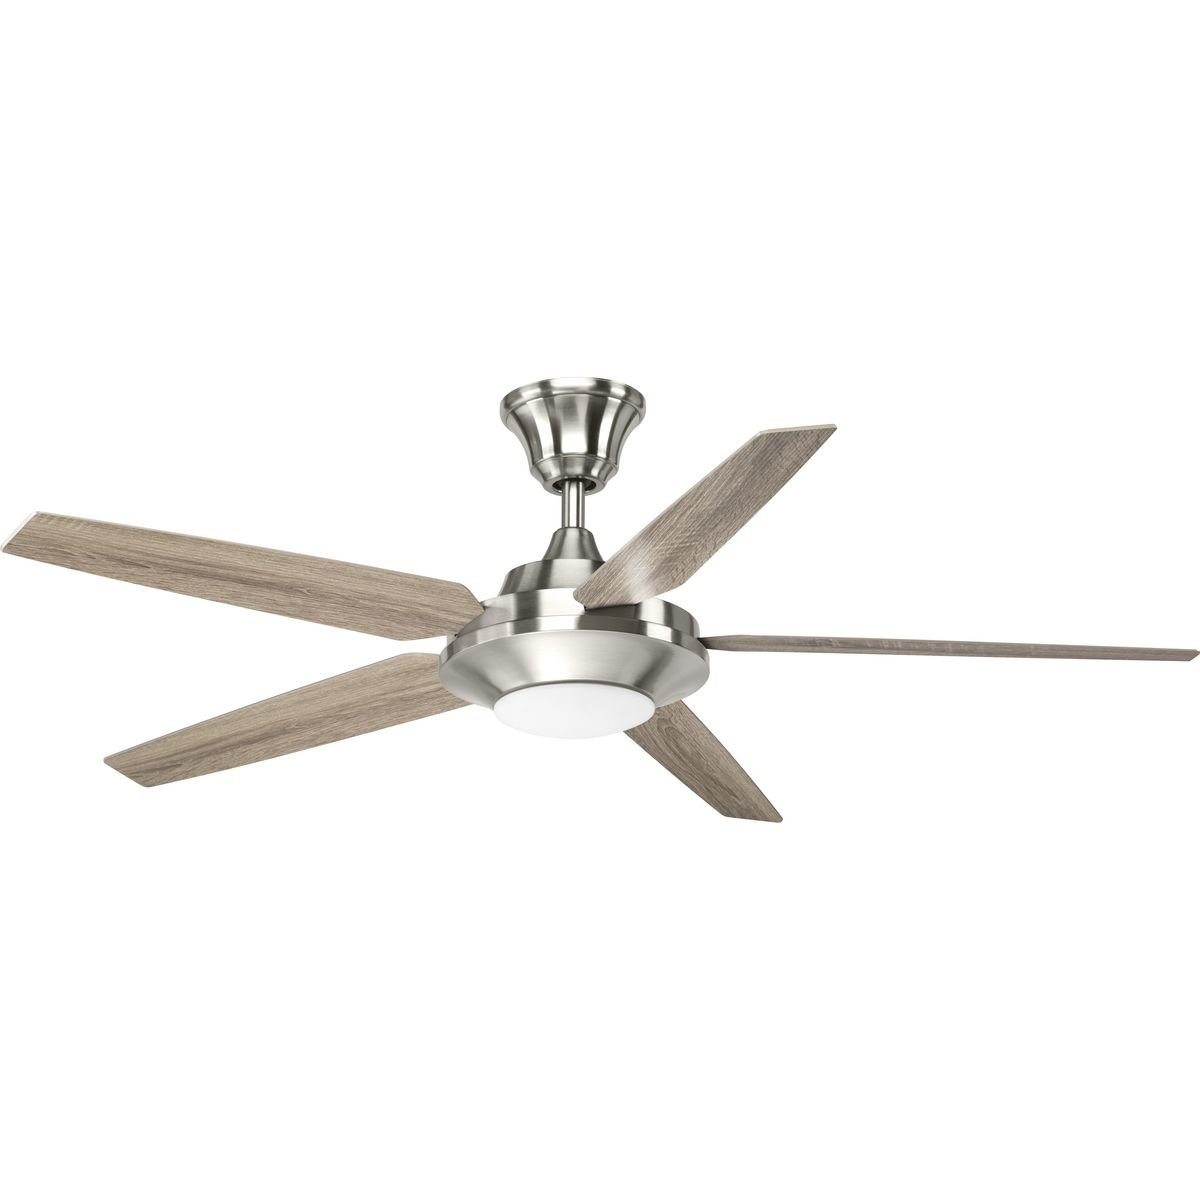 "Red Barrel Studio 54"" Searles 5 Blade Led Ceiling Fan With Remote, Light Kit Included Within Latest Saito 6 Blade Ceiling Fans (View 14 of 20)"